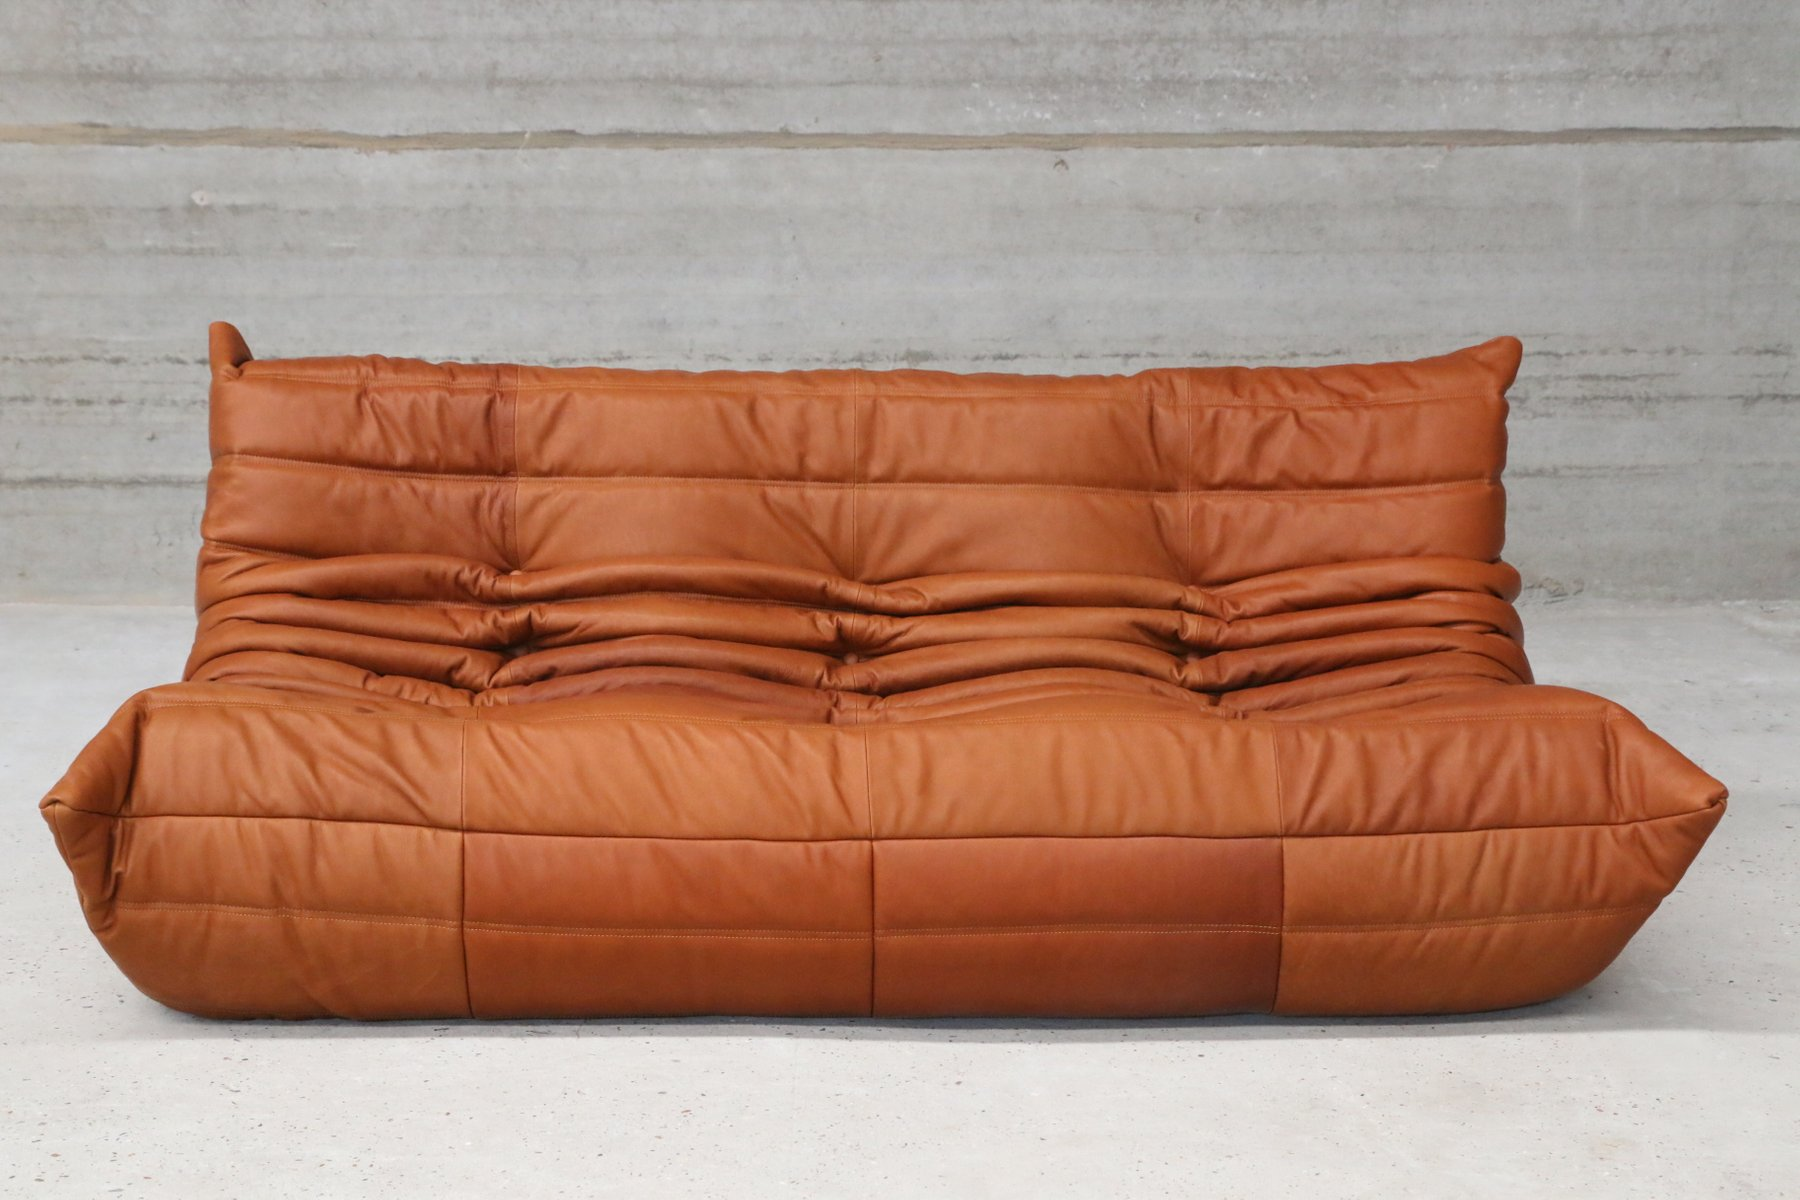 togo sofa replica uk grey crushed velvet vintage cognac leather three seater by michel ducaroy for ligne roset